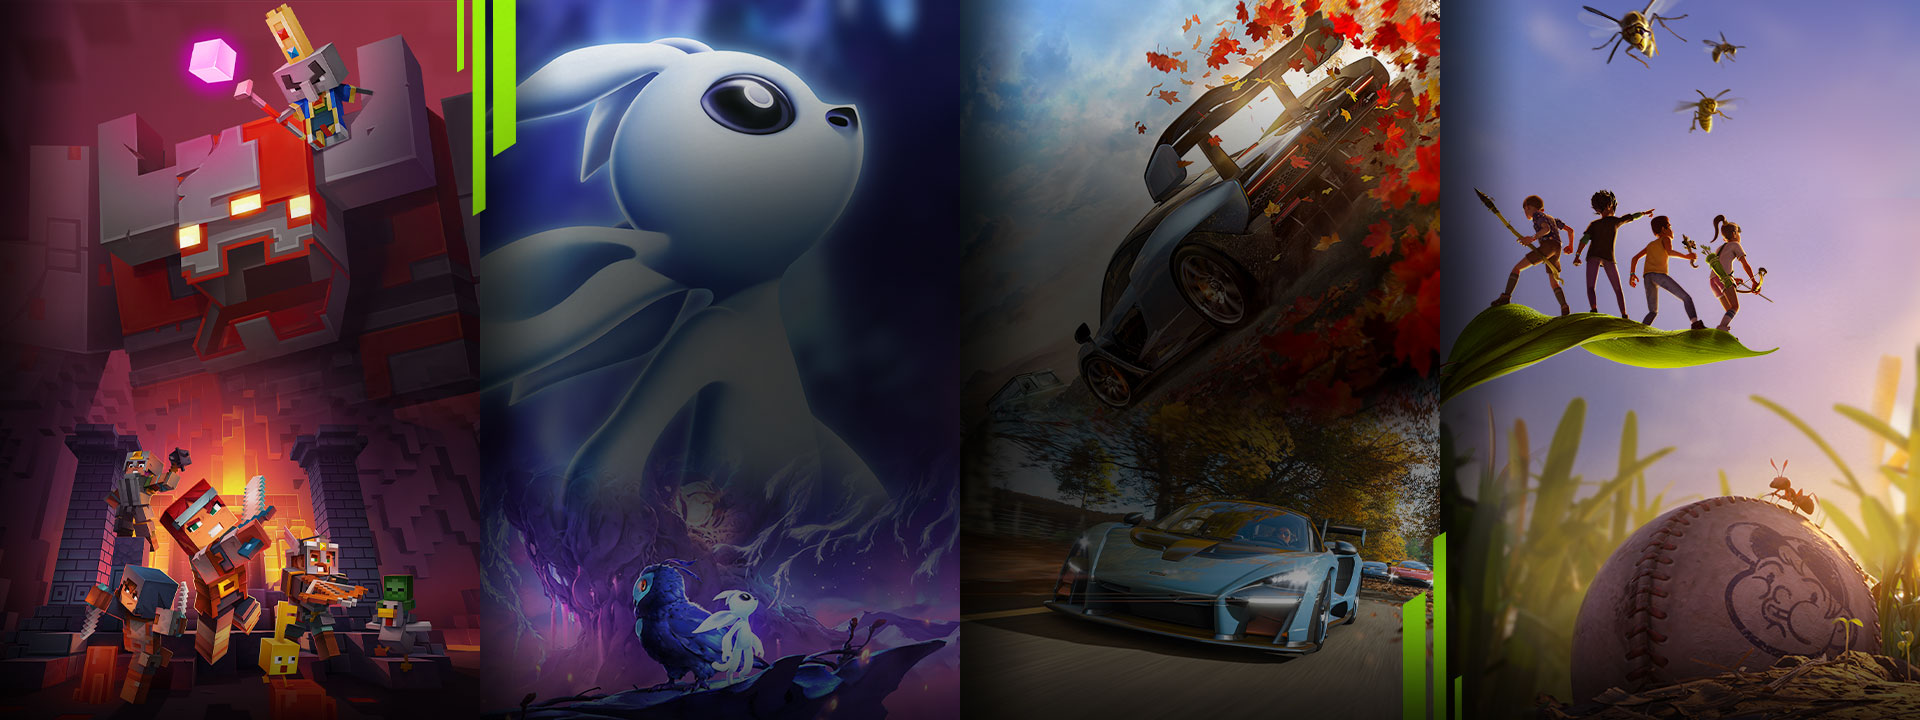 Xbox Game Pass 推出精選遊戲,包括 Minecraft: Dungeons、Ori and the Will of the Wisps、Forza Horizon 4 和 Grounded。